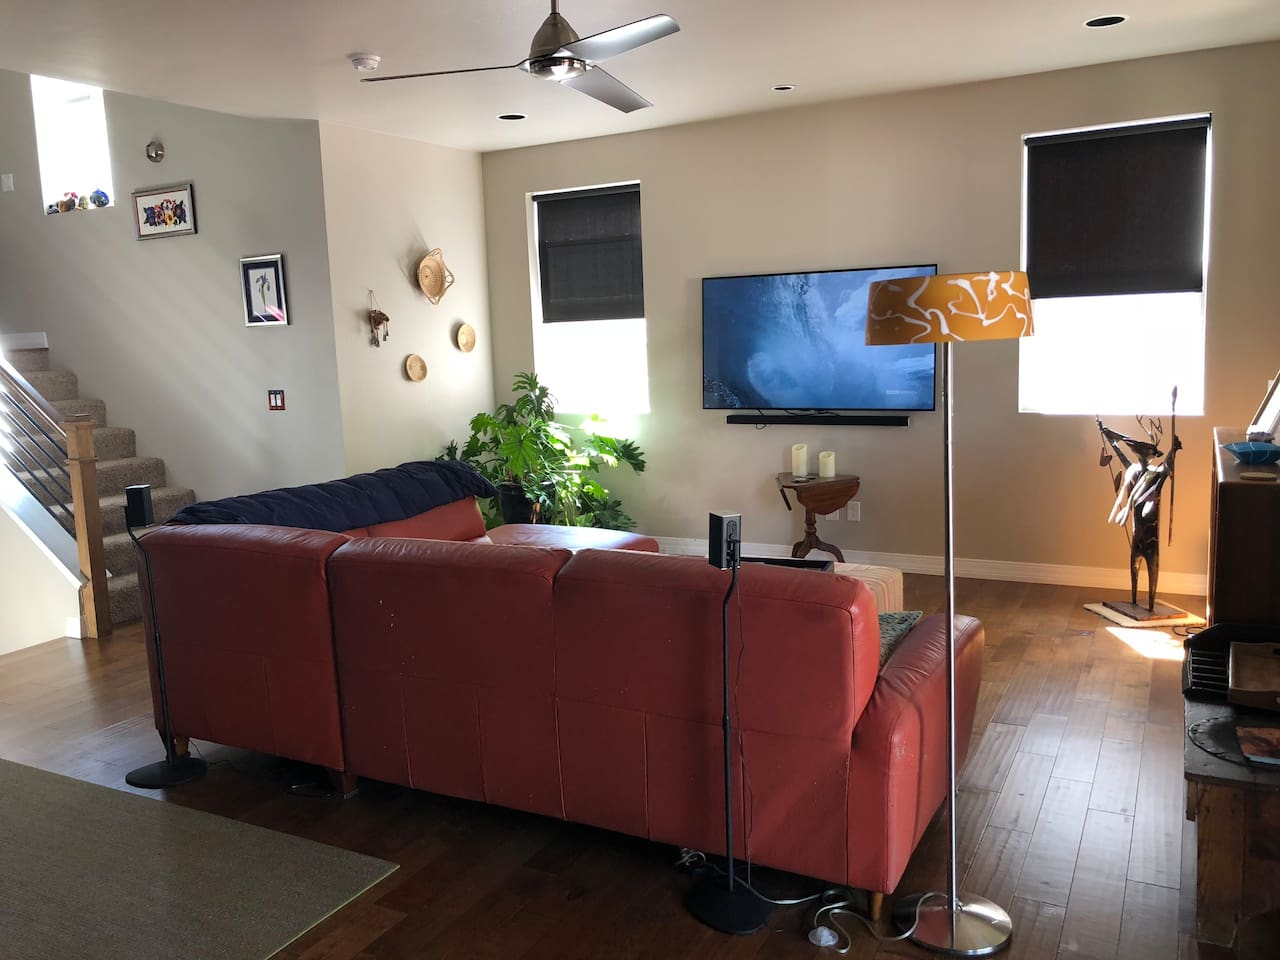 Living Room shared with host - TV and surround sound